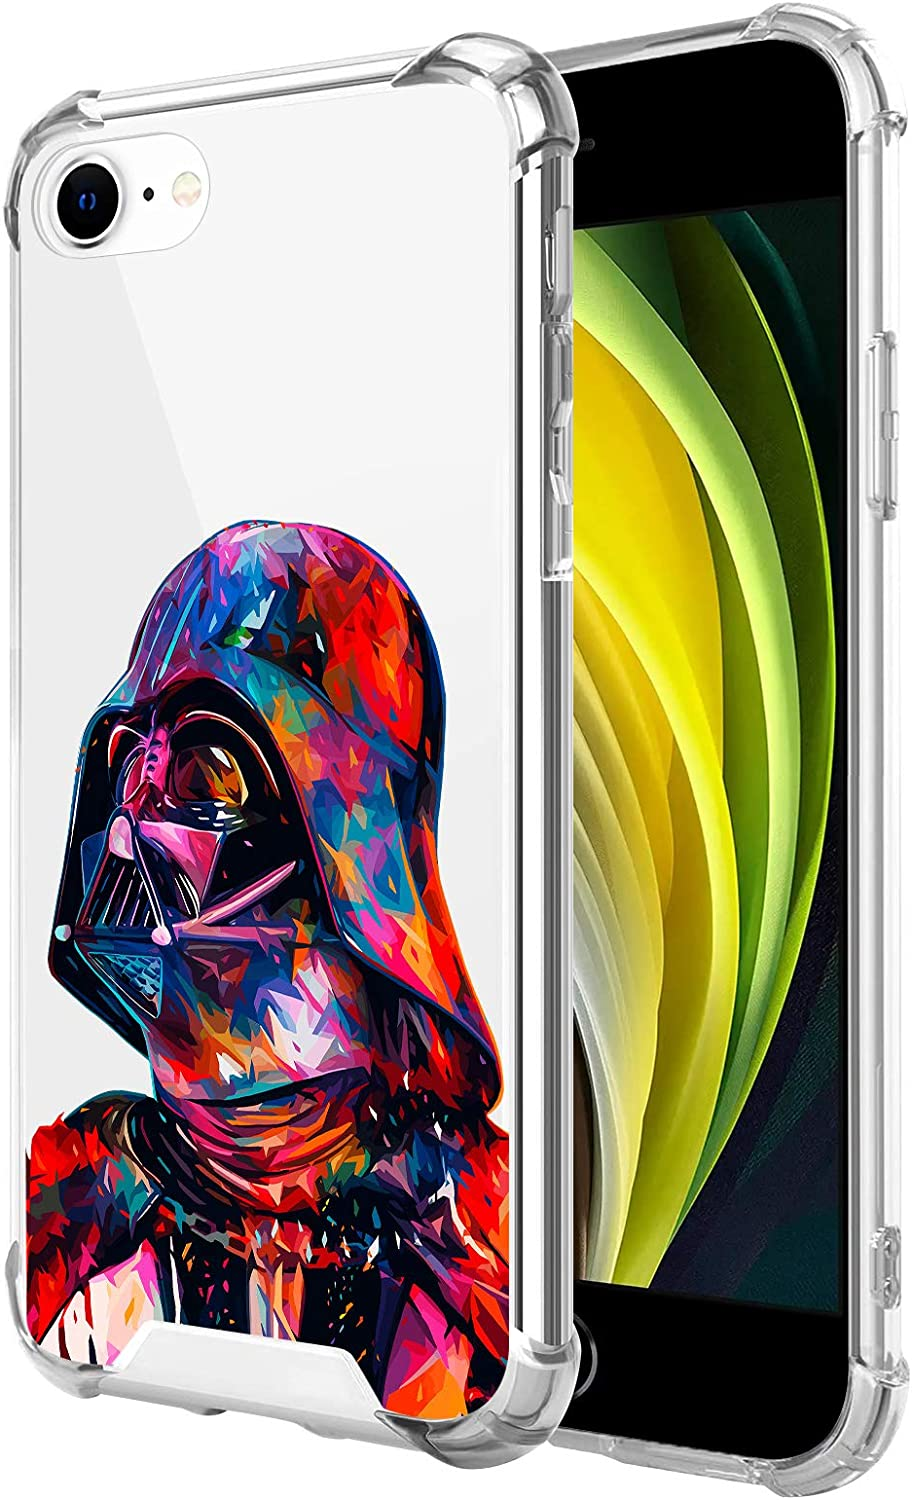 Compatible with iPhone 8 iPhone 7 iPhone SE 2020 Clear Case, Shockproof Slim Fit TPU Cover Protective Phone Case for iPhone 8/7 /SE 2020 4.7